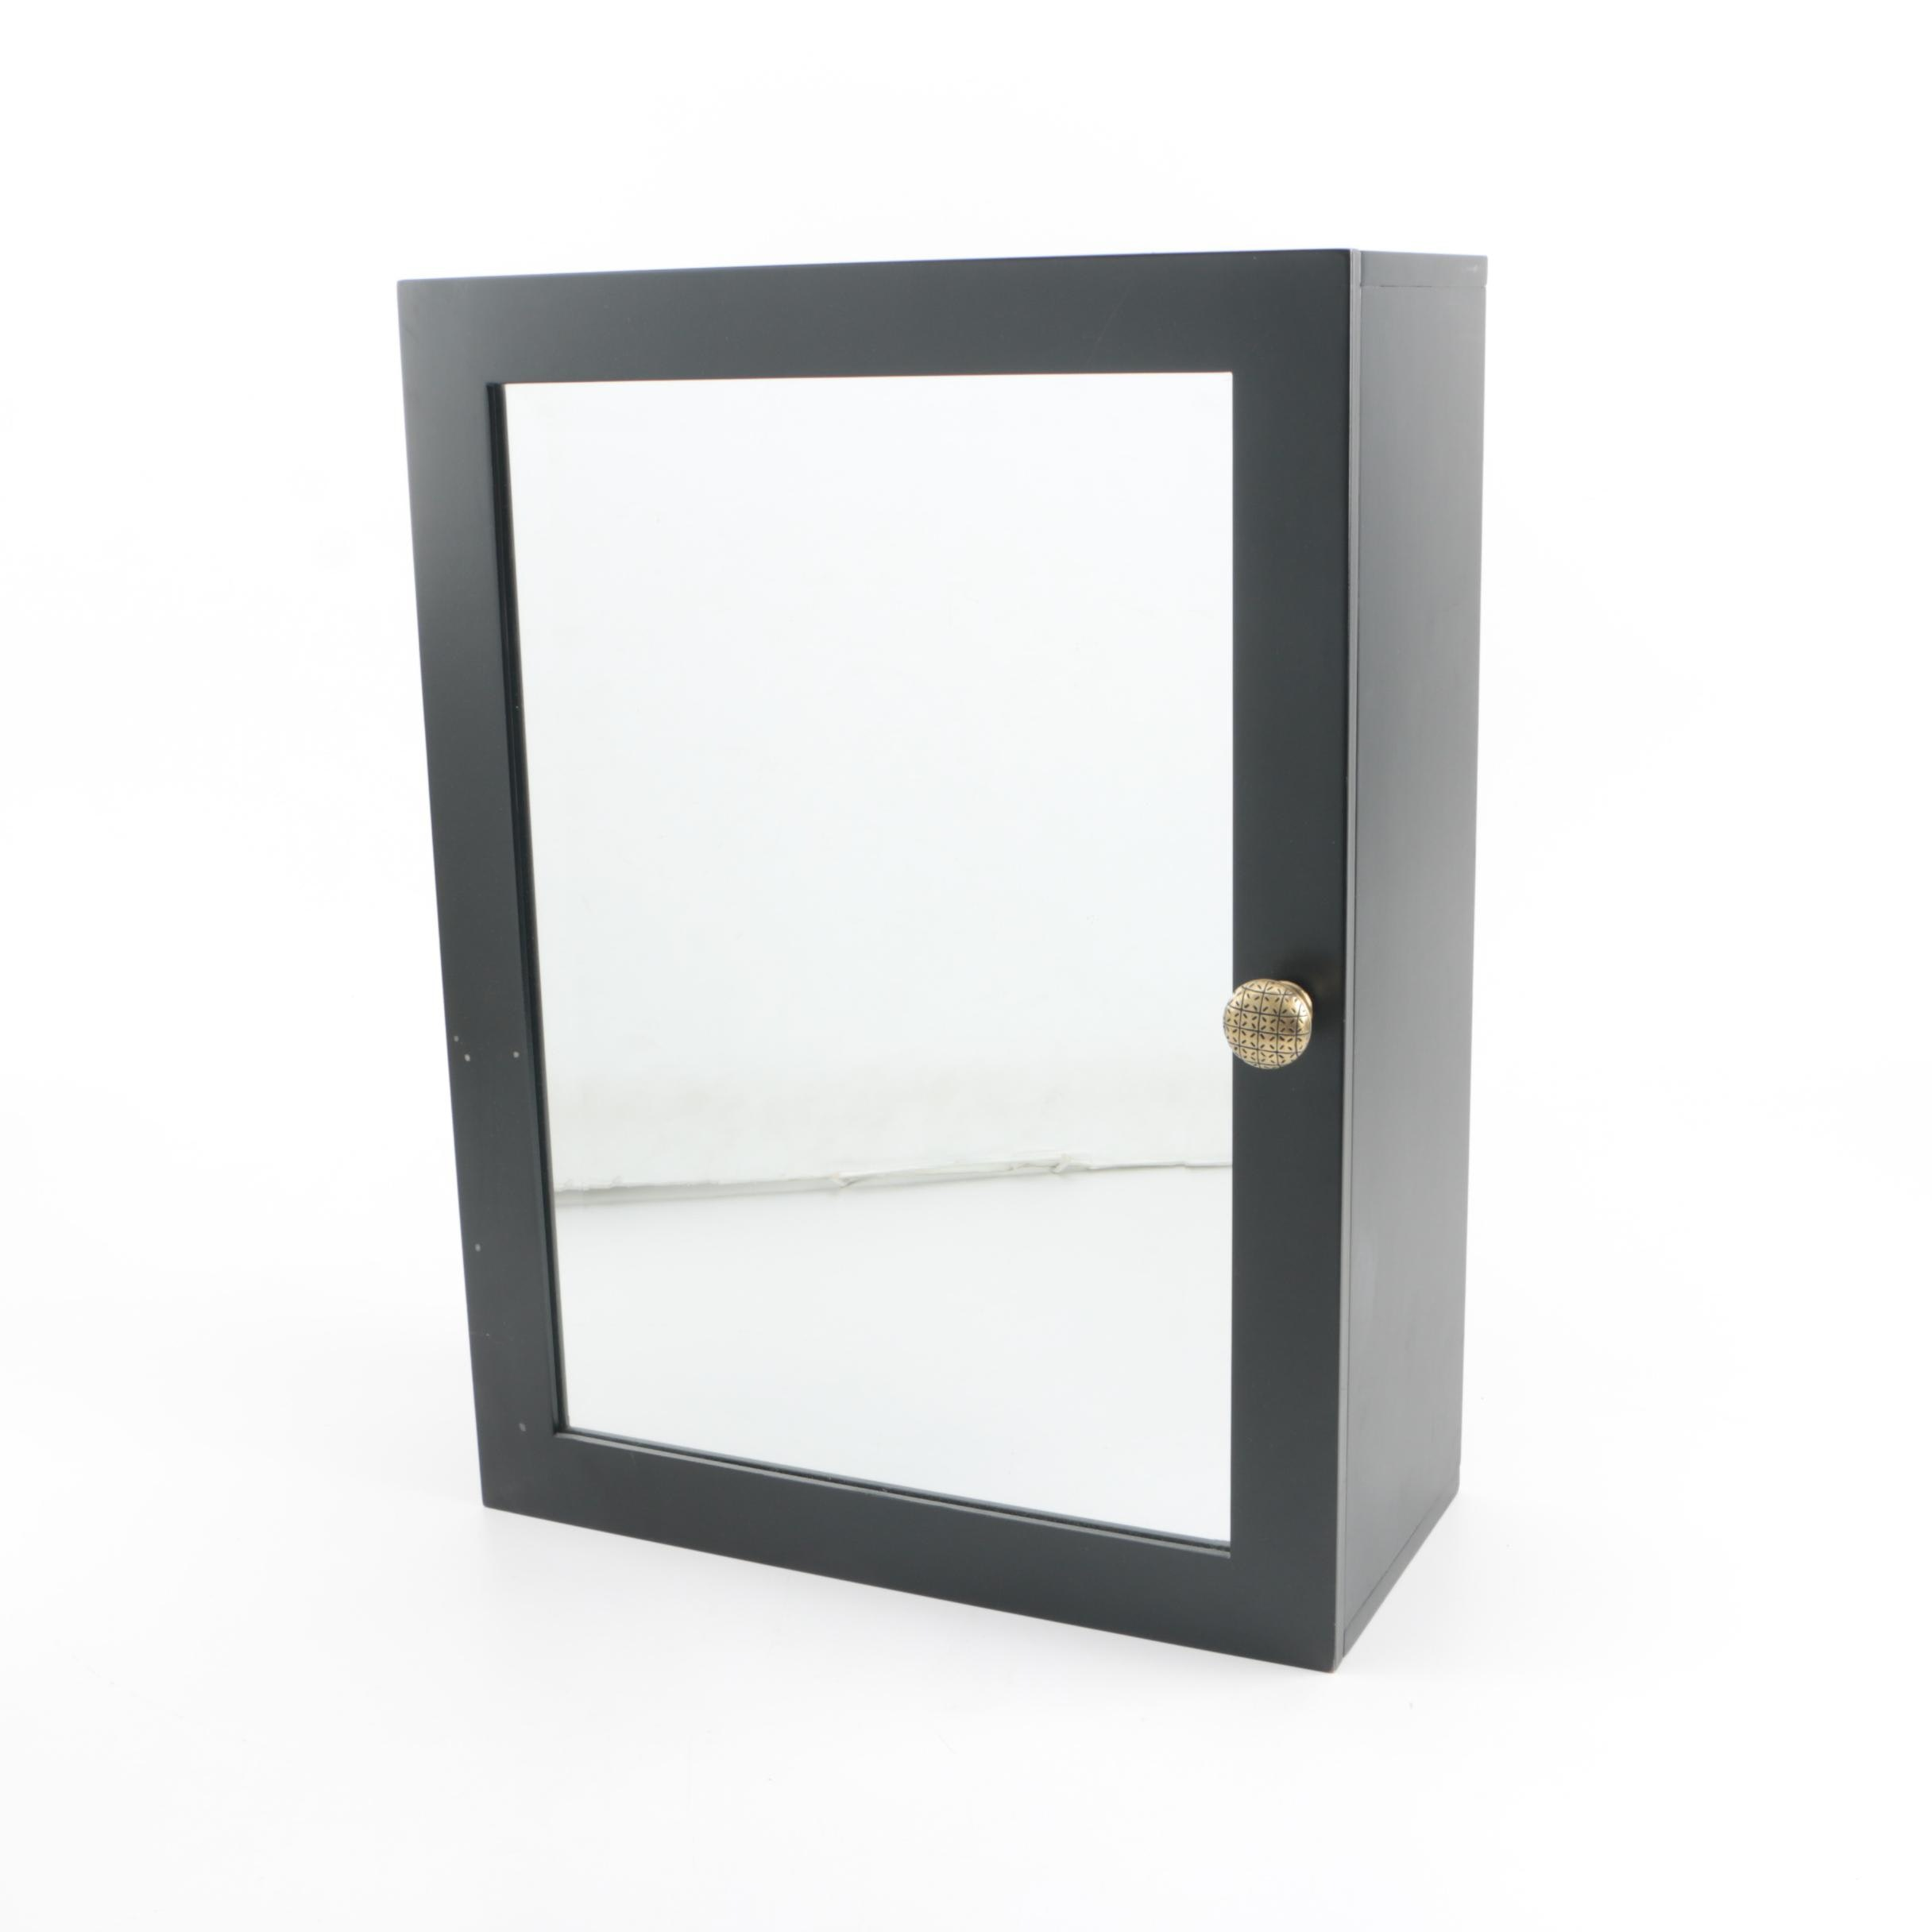 Contemporary Black Lacquered Wall Mount Cabinet with Mirrored Front Panel